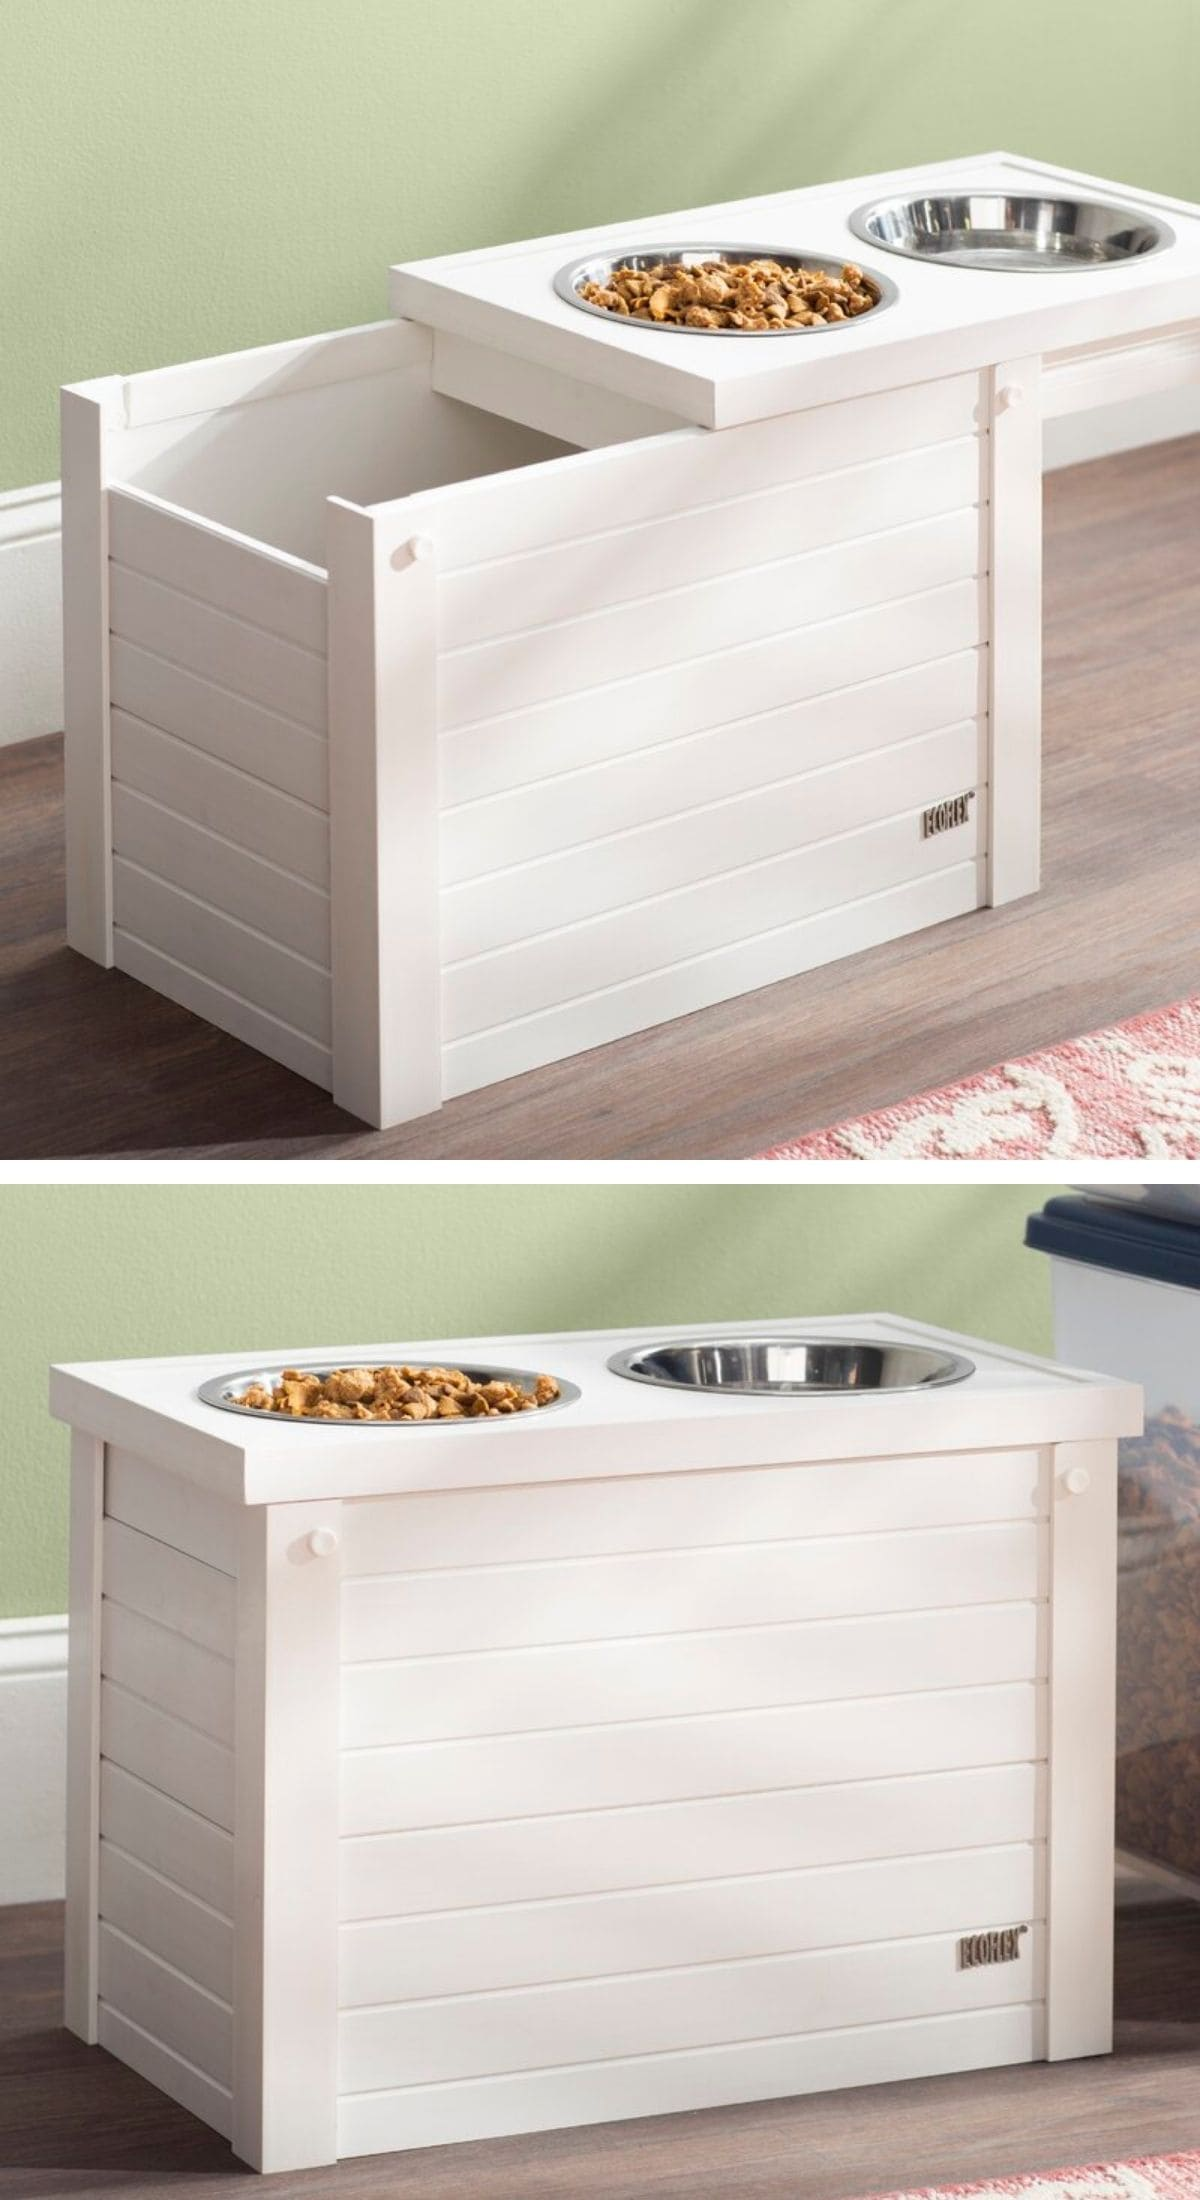 pet furniture 15 - 18 amazing pet furniture ideas that are perfect solutions for small spaces